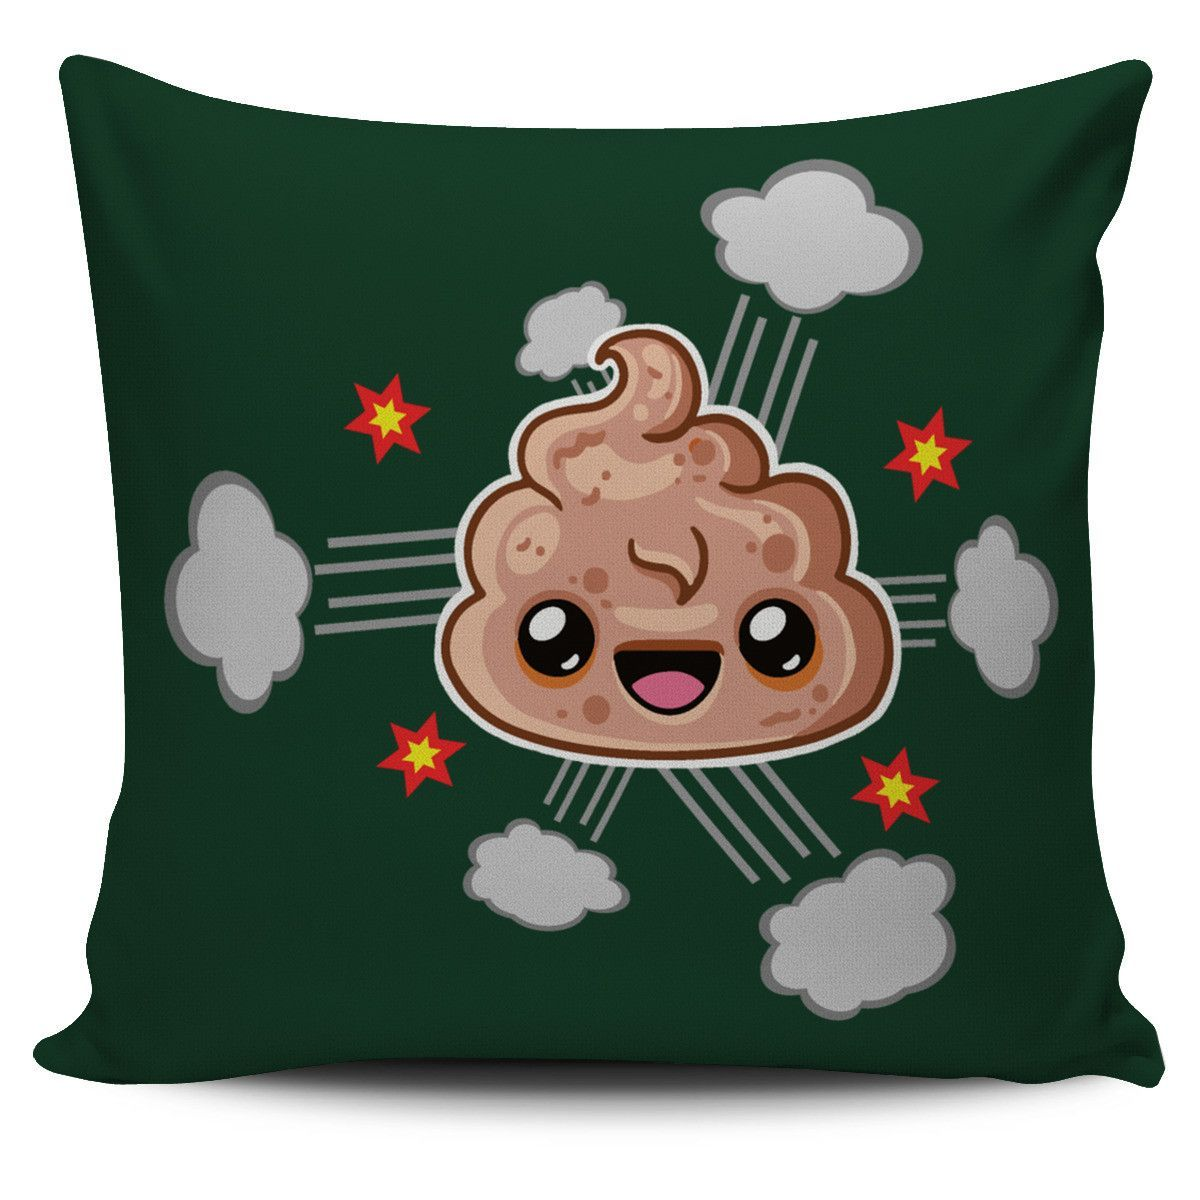 Poop emoji pillow funny character design emoji and products